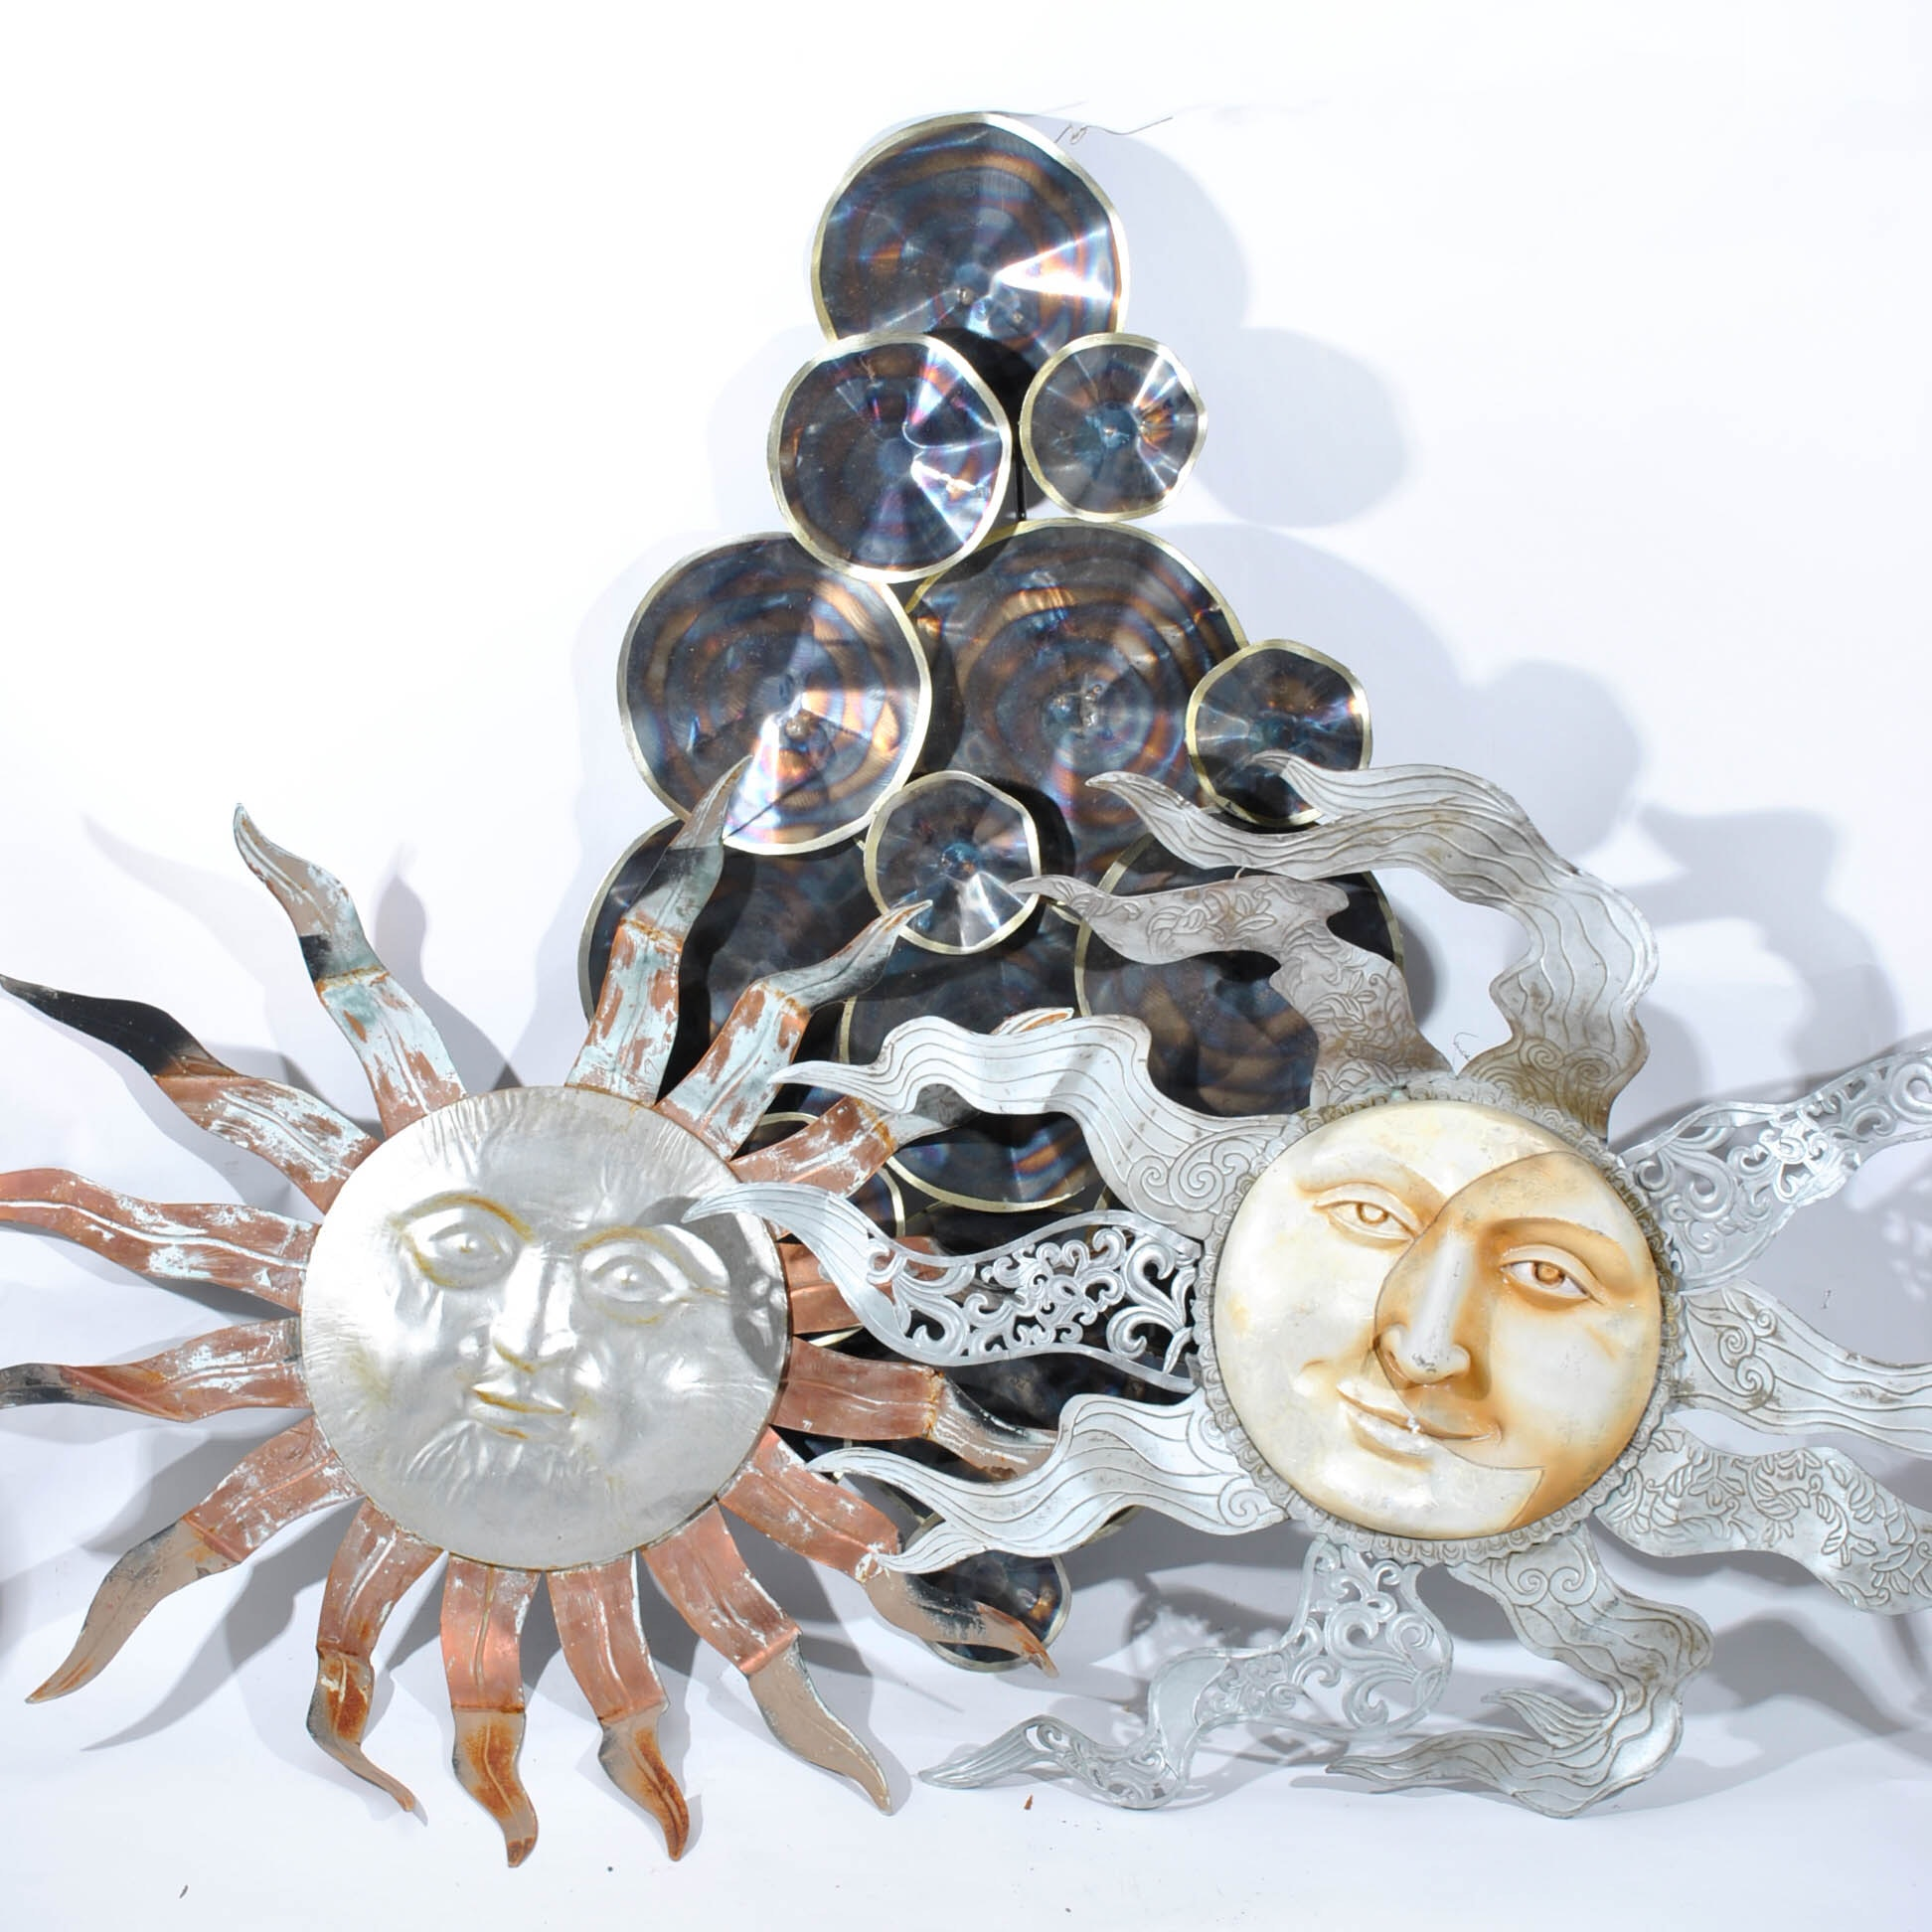 Garden Decor including Two Sun in Splendor and Sculptural Discs